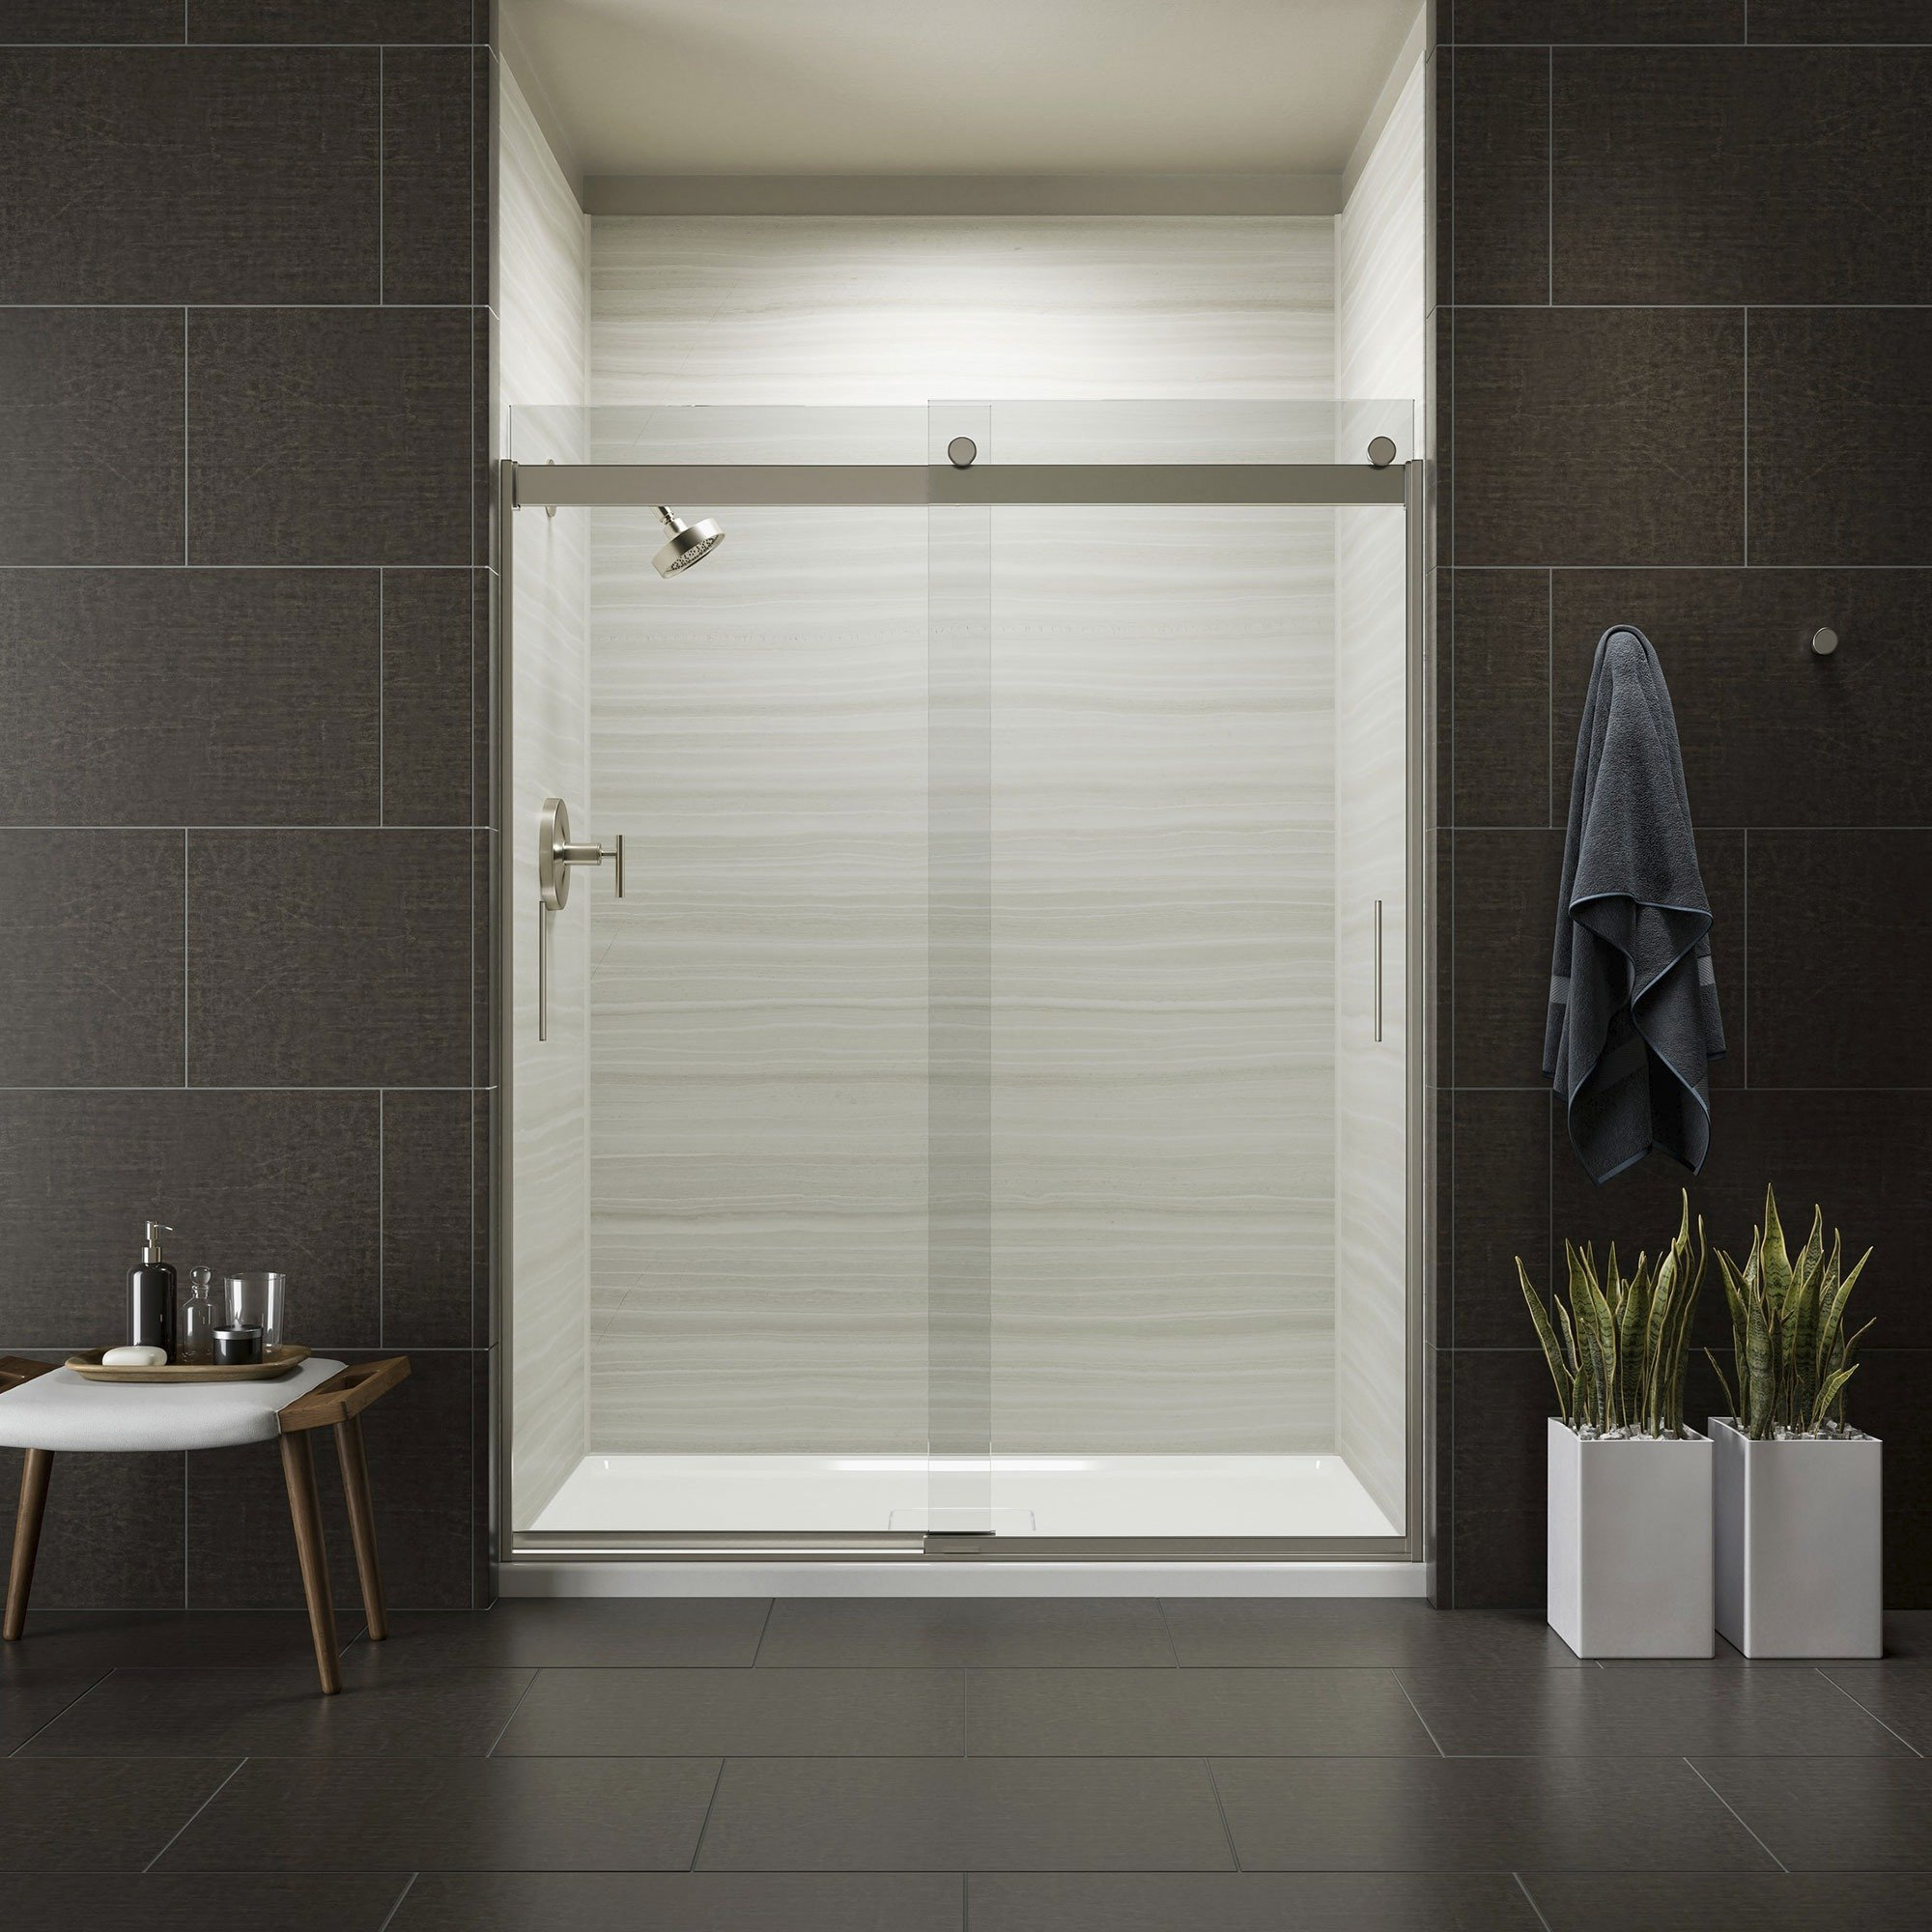 KOHLER K-706009-L-MX Levity  Bypass Shower Door with Handle and 1/4-Inch  Crystal Clear Glass in Matte Nickel